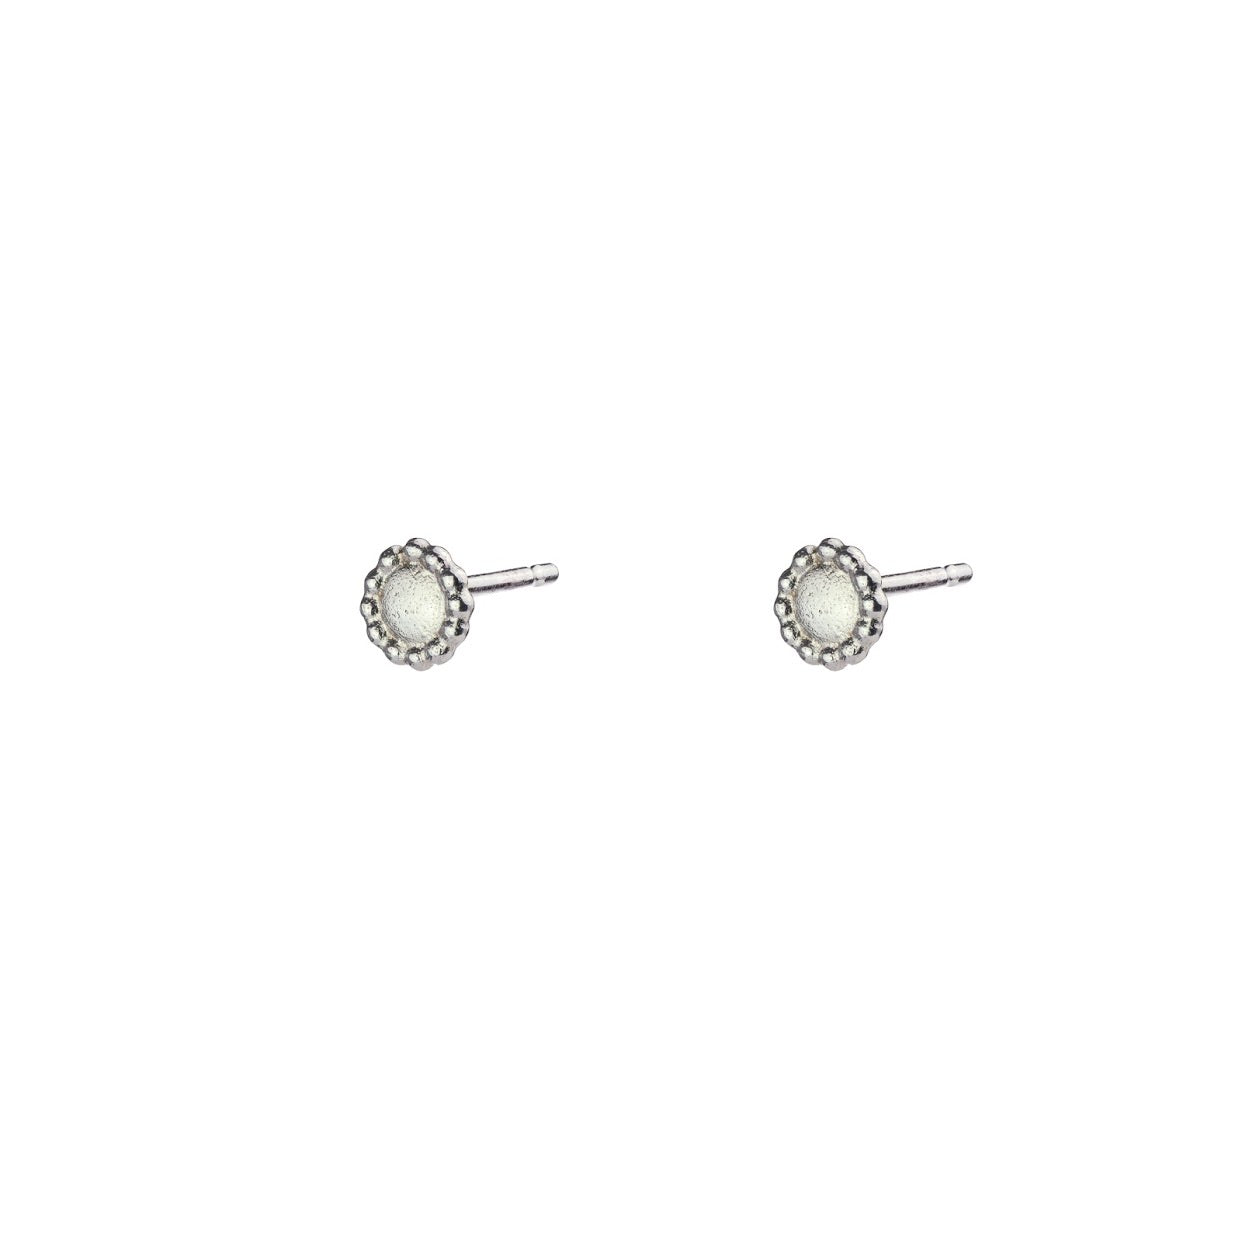 Sulis Stud Earrings